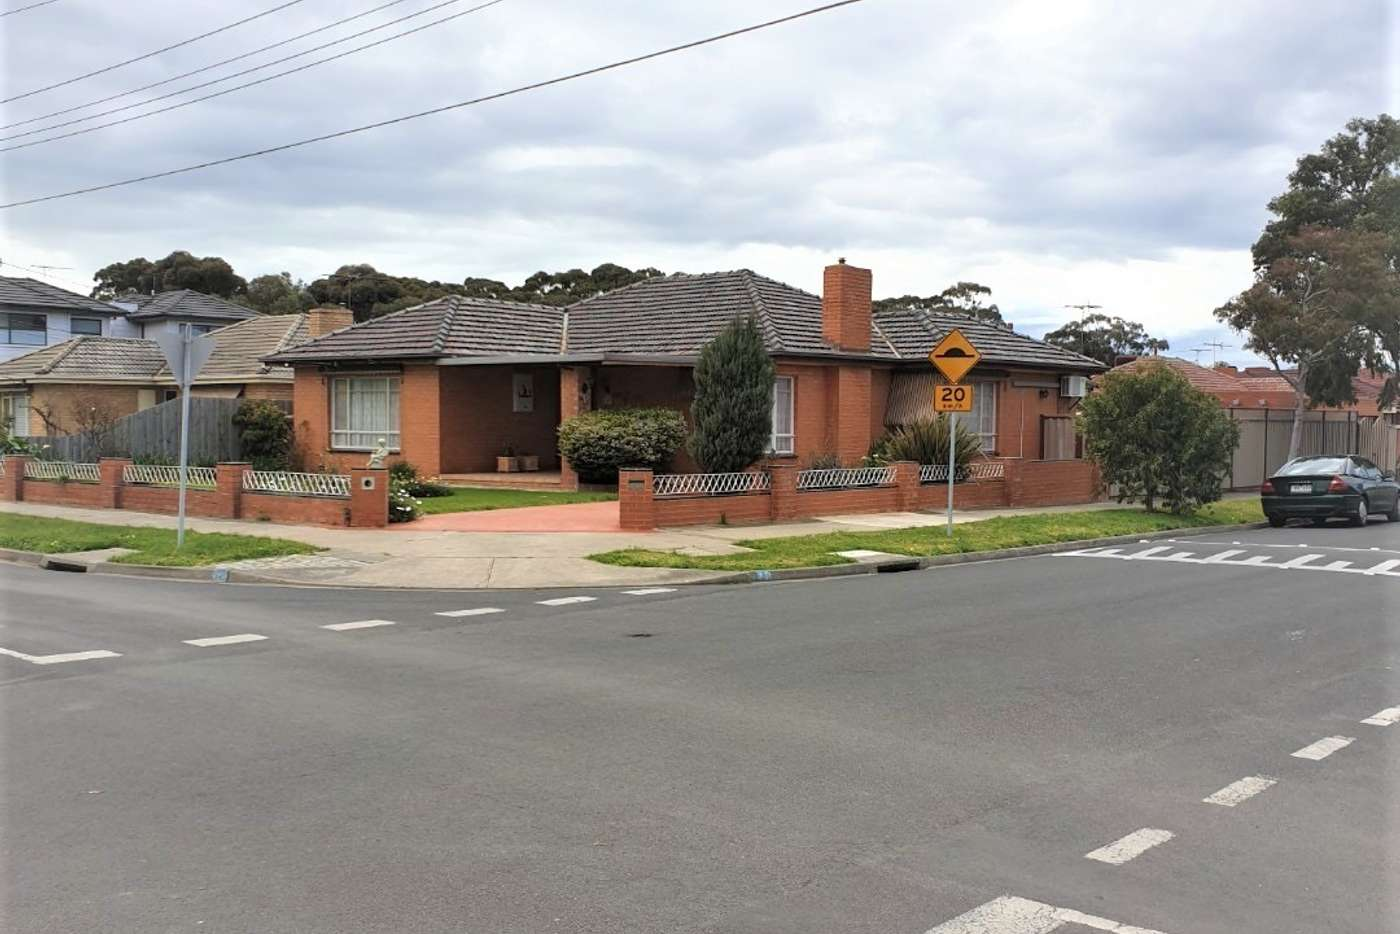 Main view of Homely house listing, 12 Ogden Street, Glenroy VIC 3046